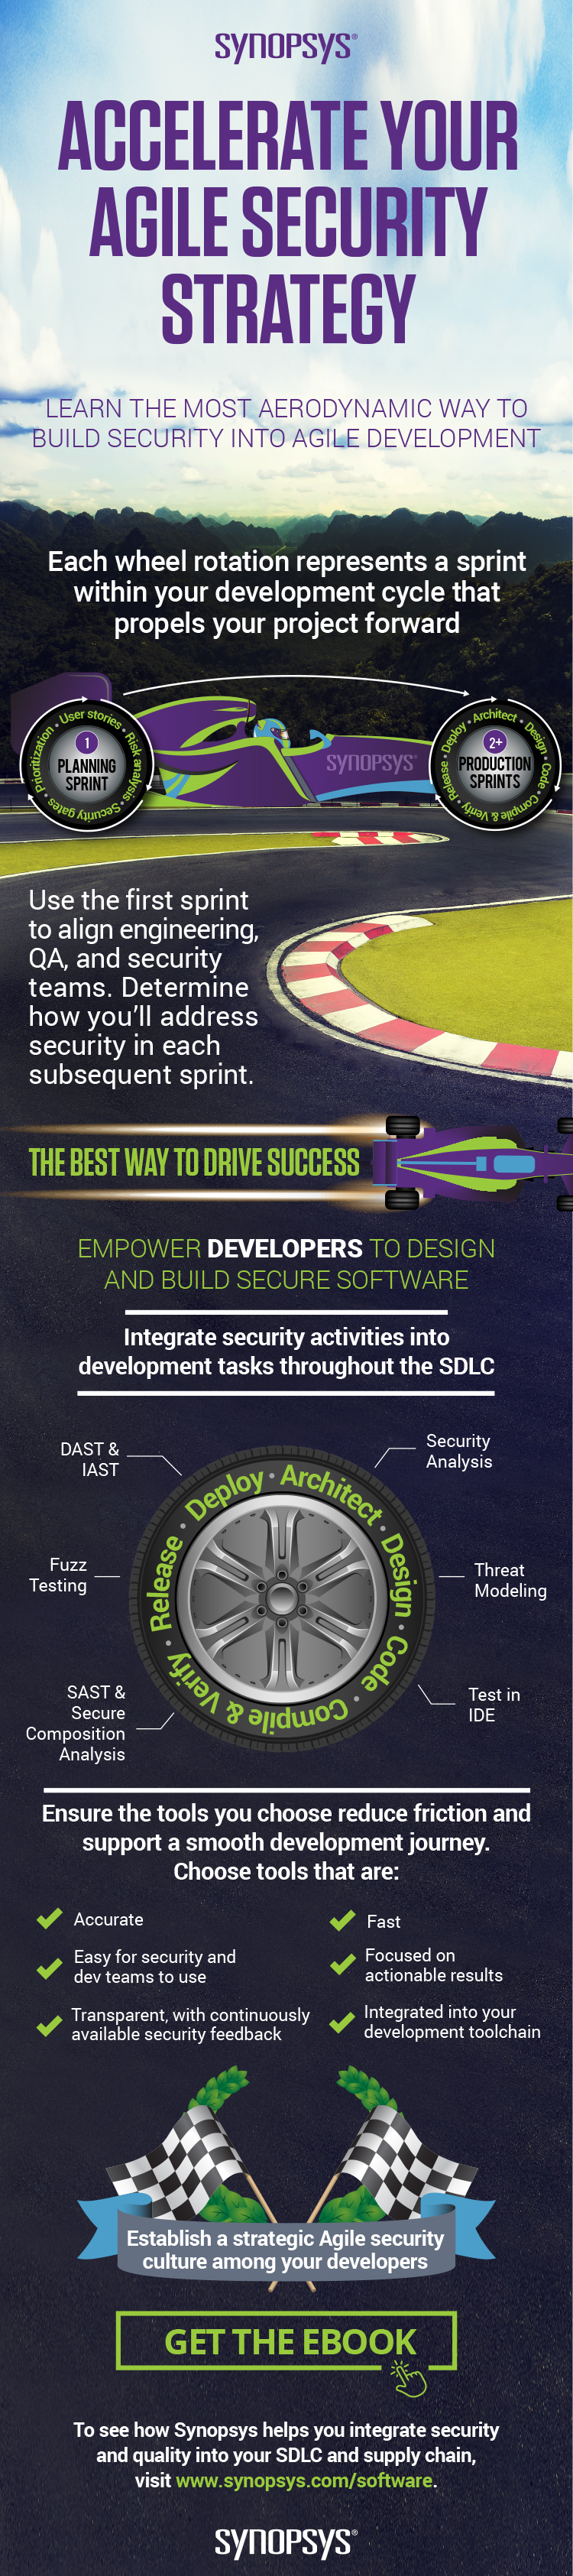 Accelerate your agile security testing strategy